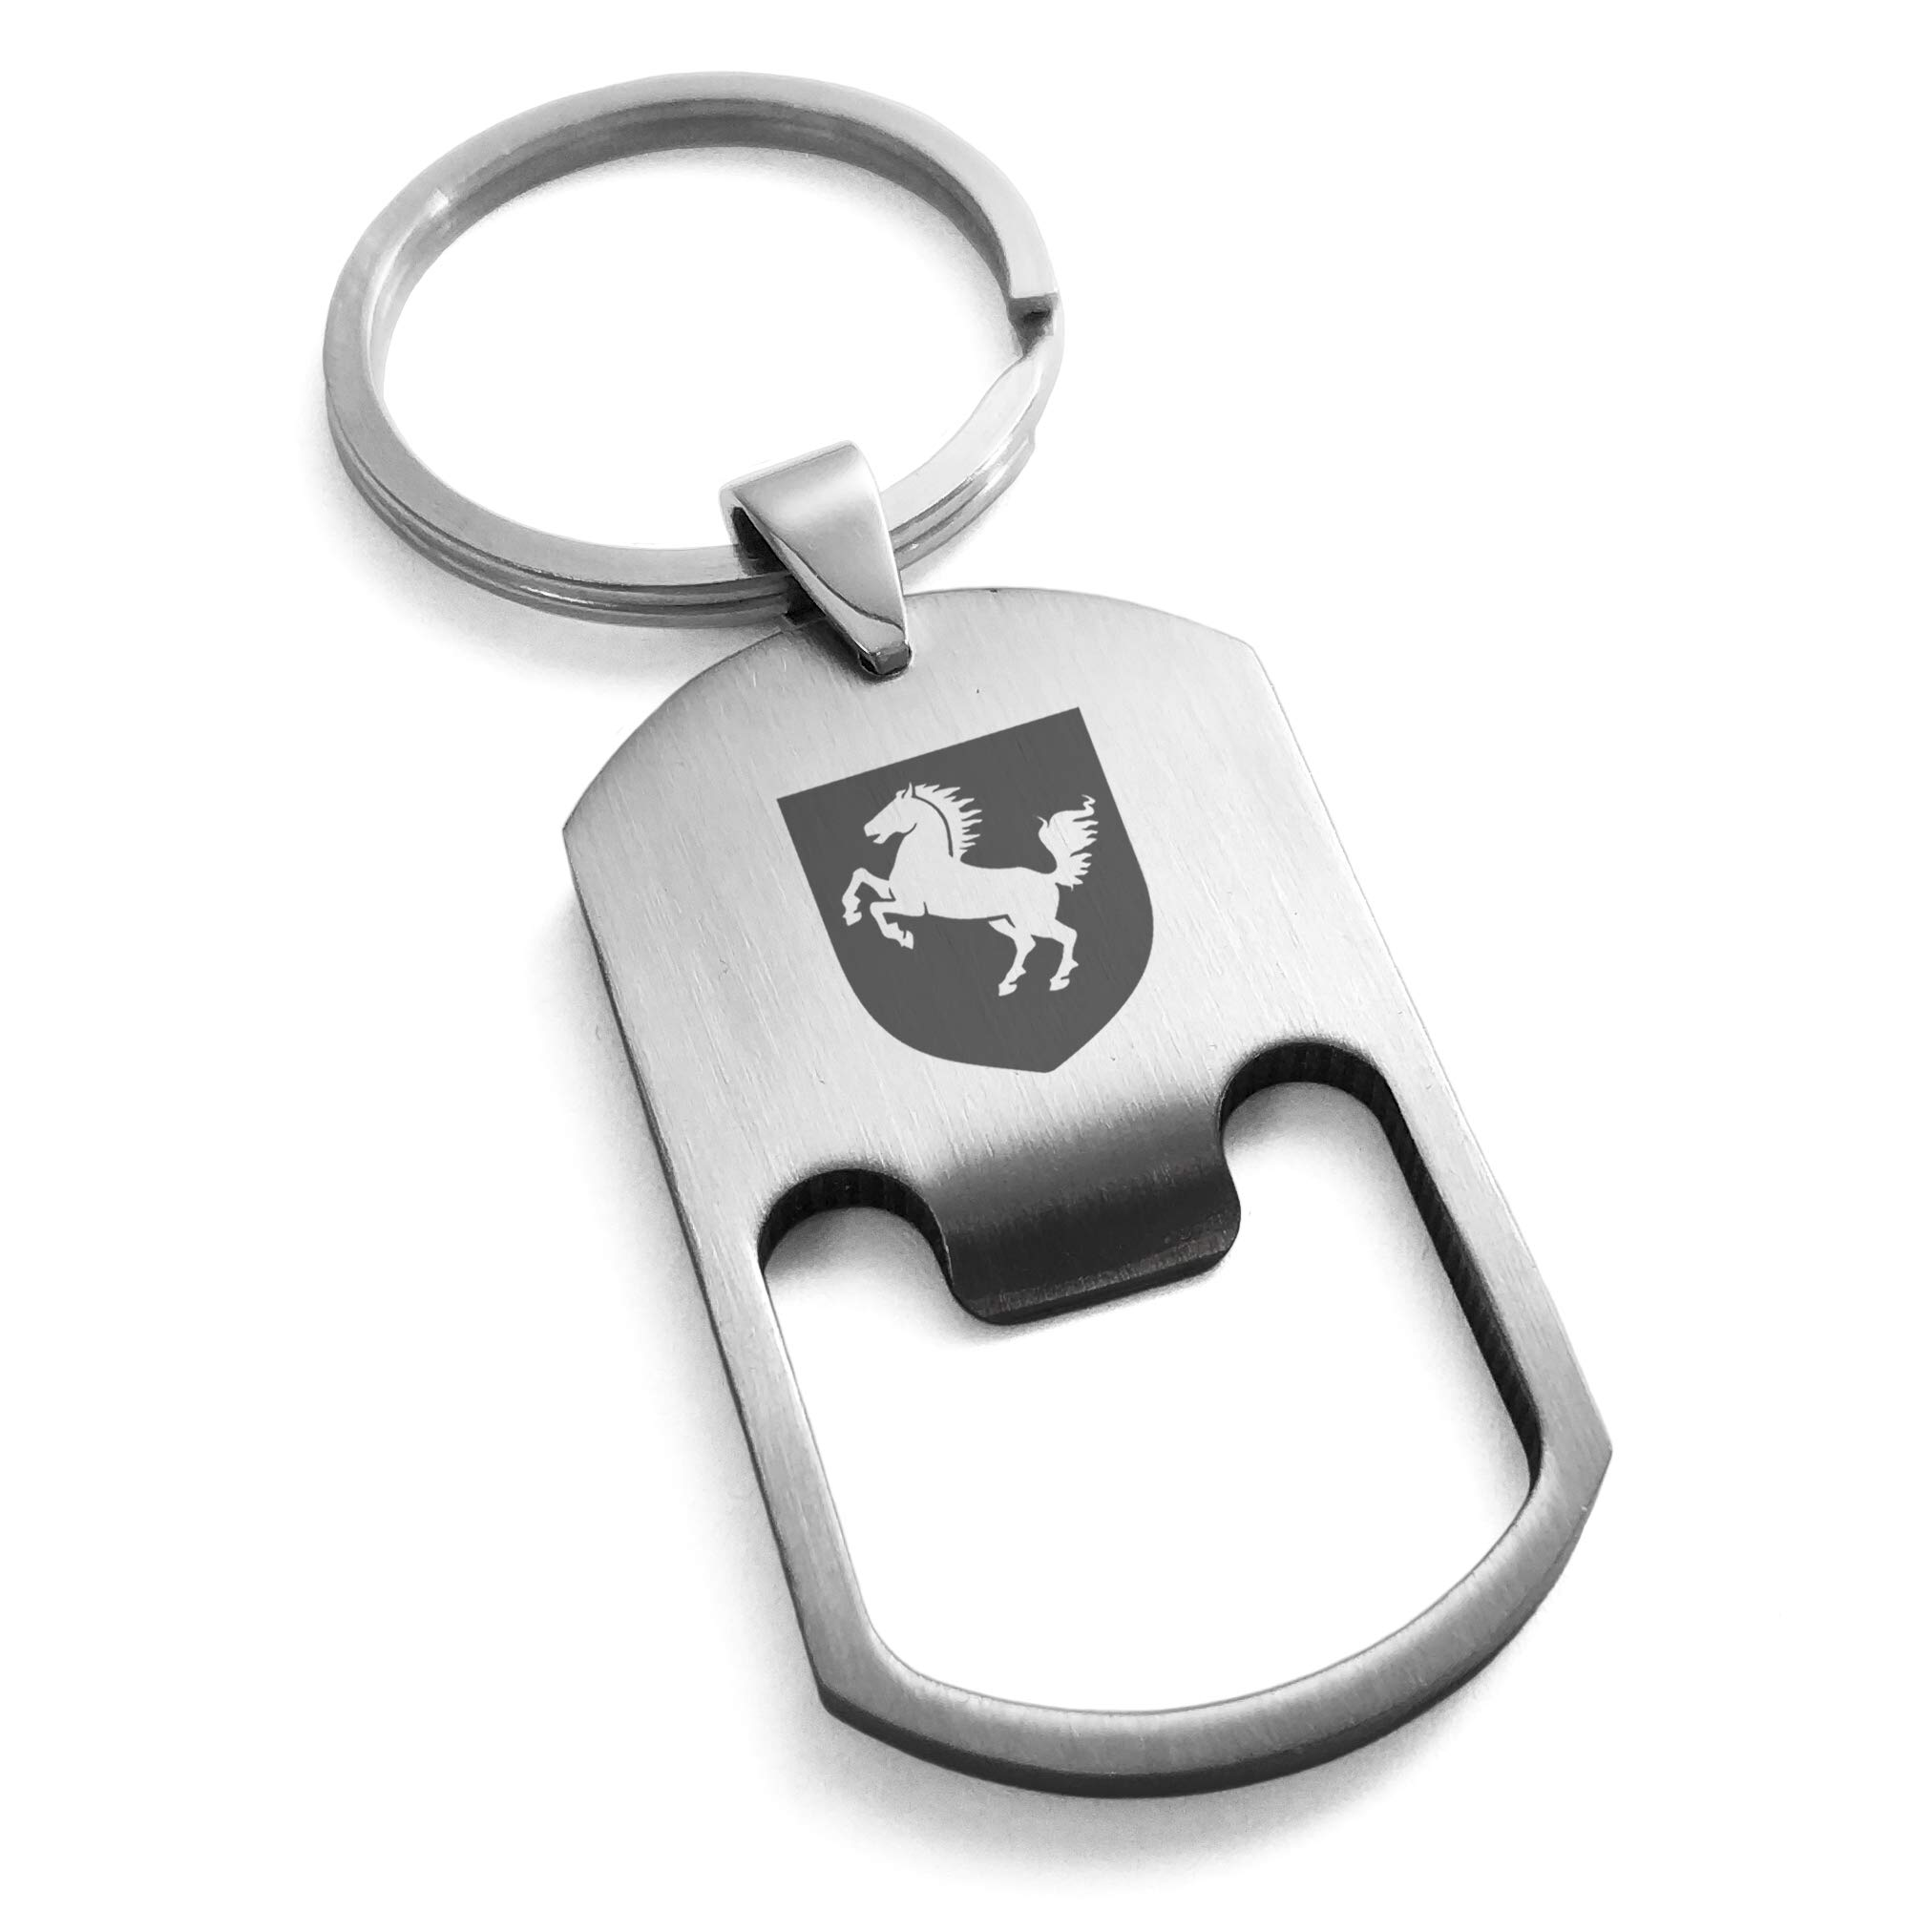 Tioneer Stainless Steel Horse Battle Coat Arms Shield Engraved Bottle Opener Dog Tag Keychain Keyring